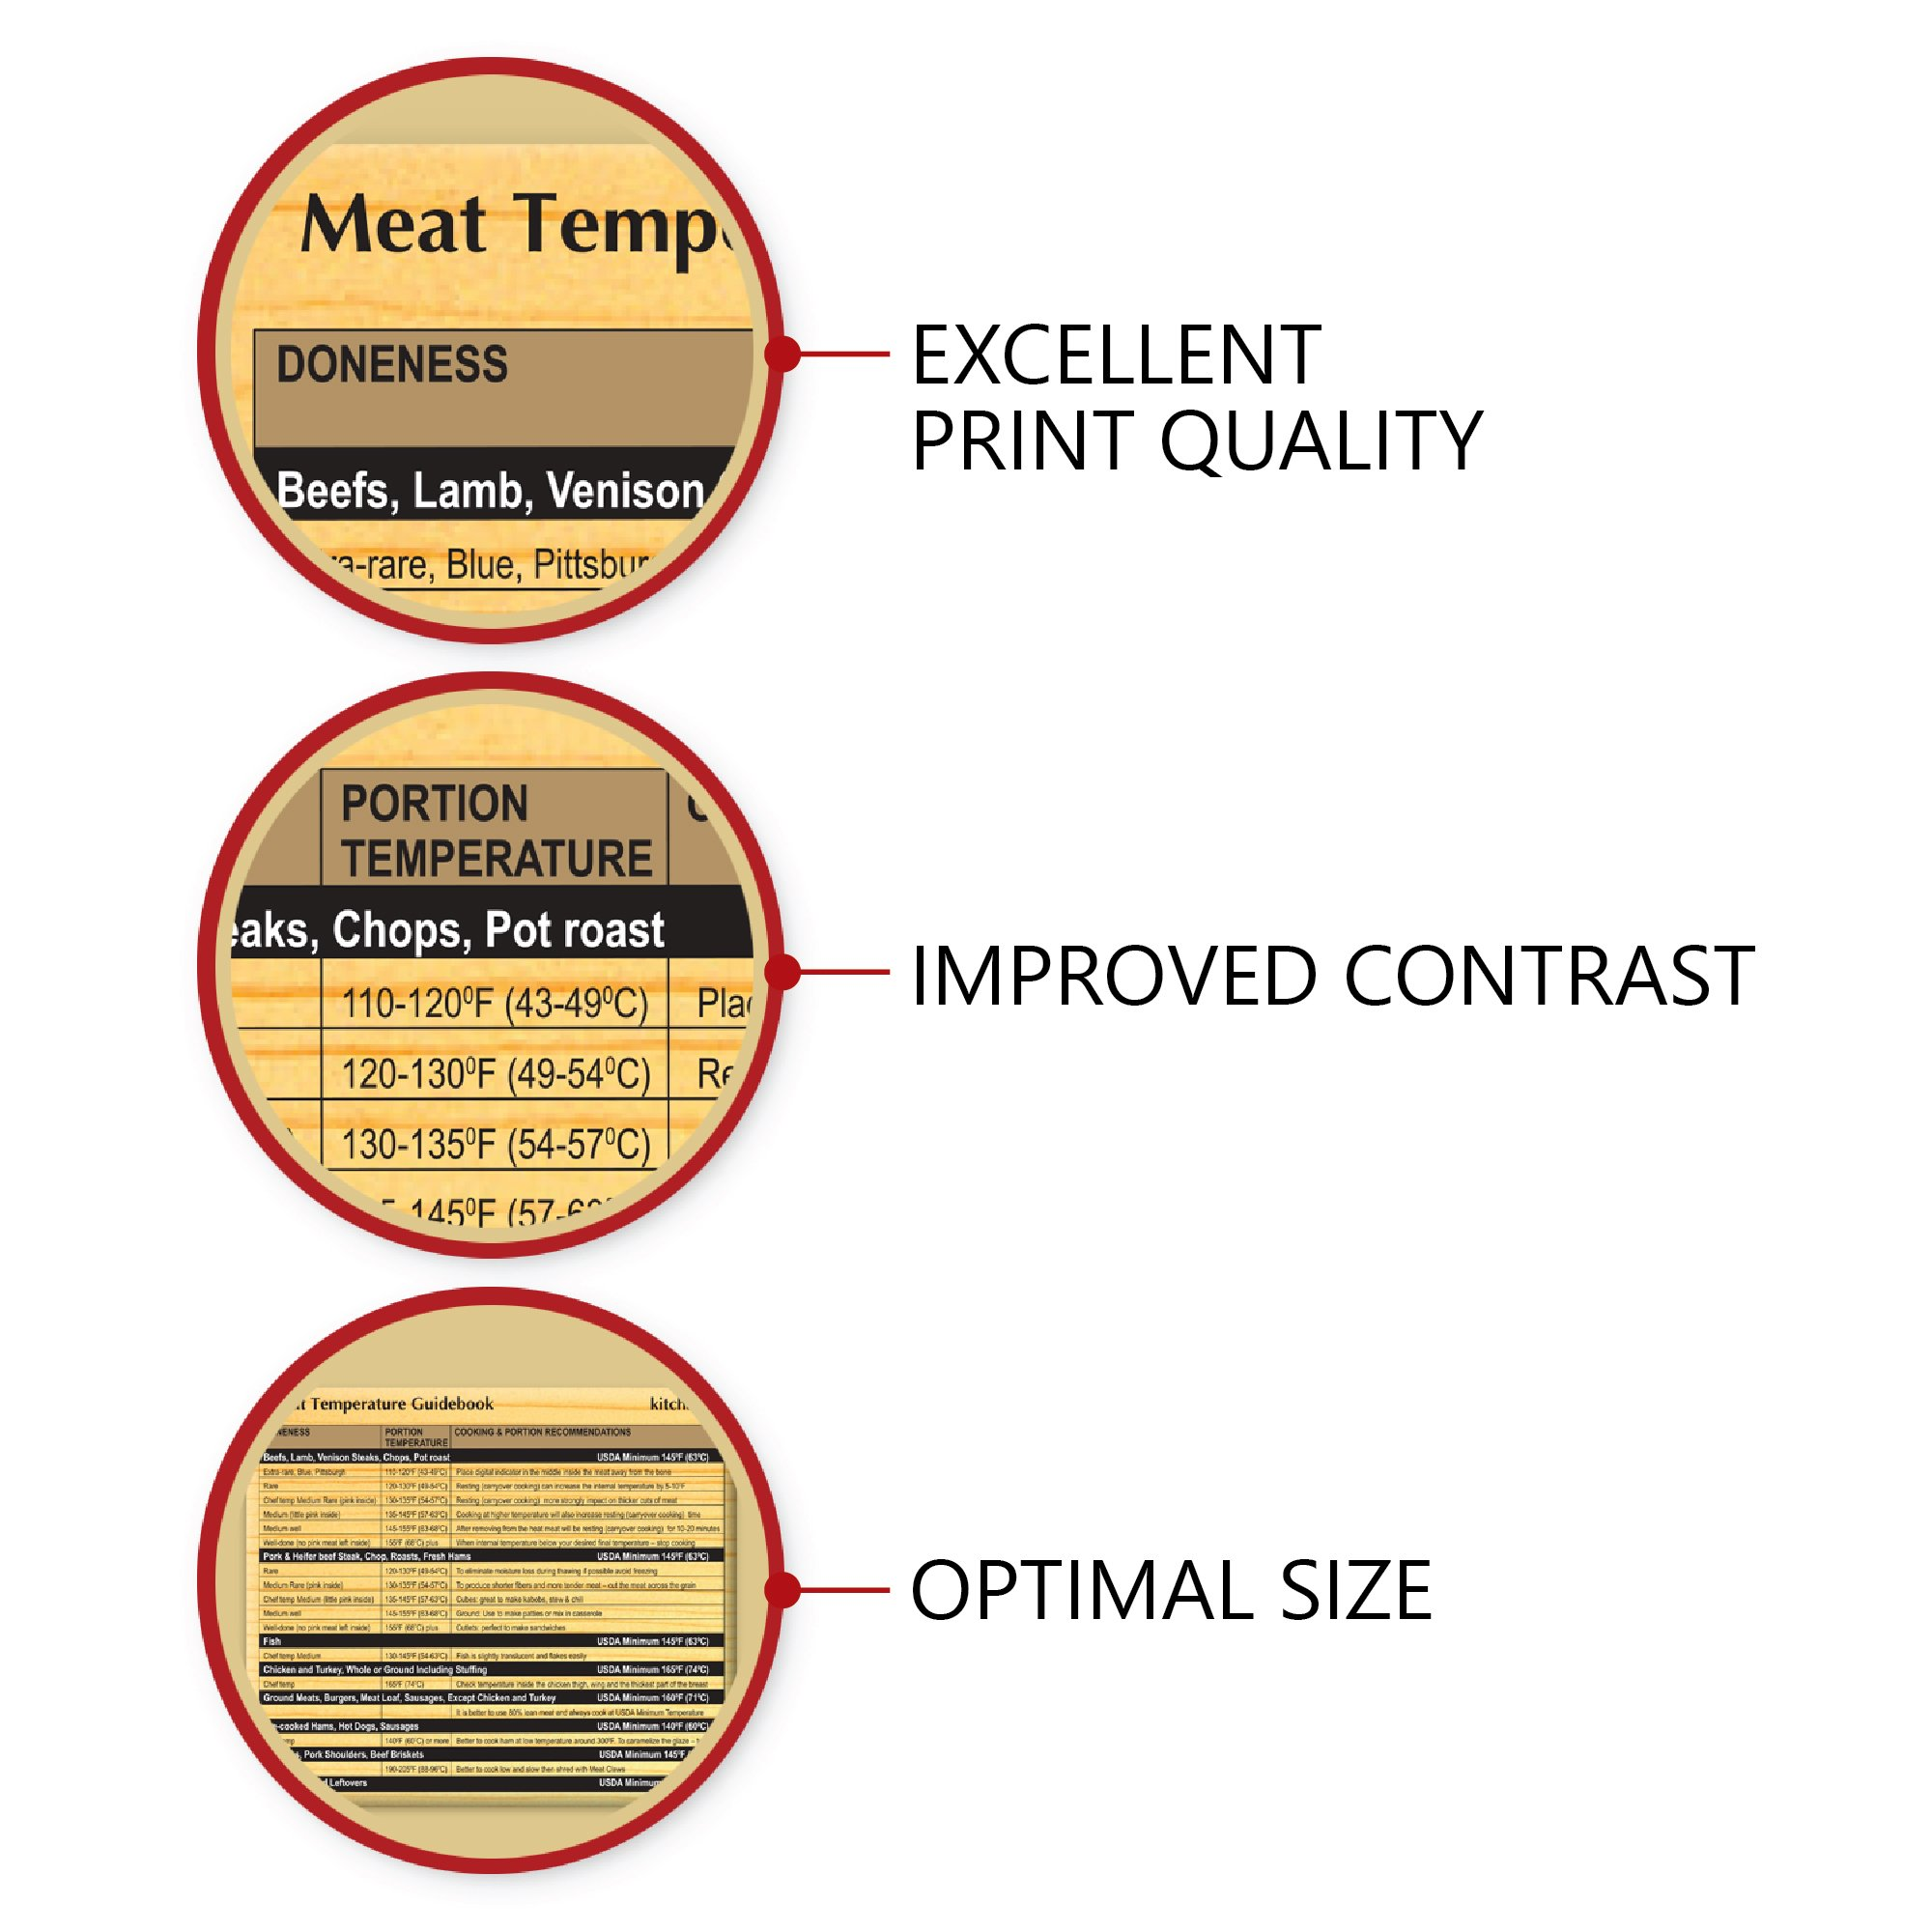 graphic about Meat Cooking Temperatures Chart Printable referred to as Meat Thermometer Magnet - Fridge Temp Grill Magnet